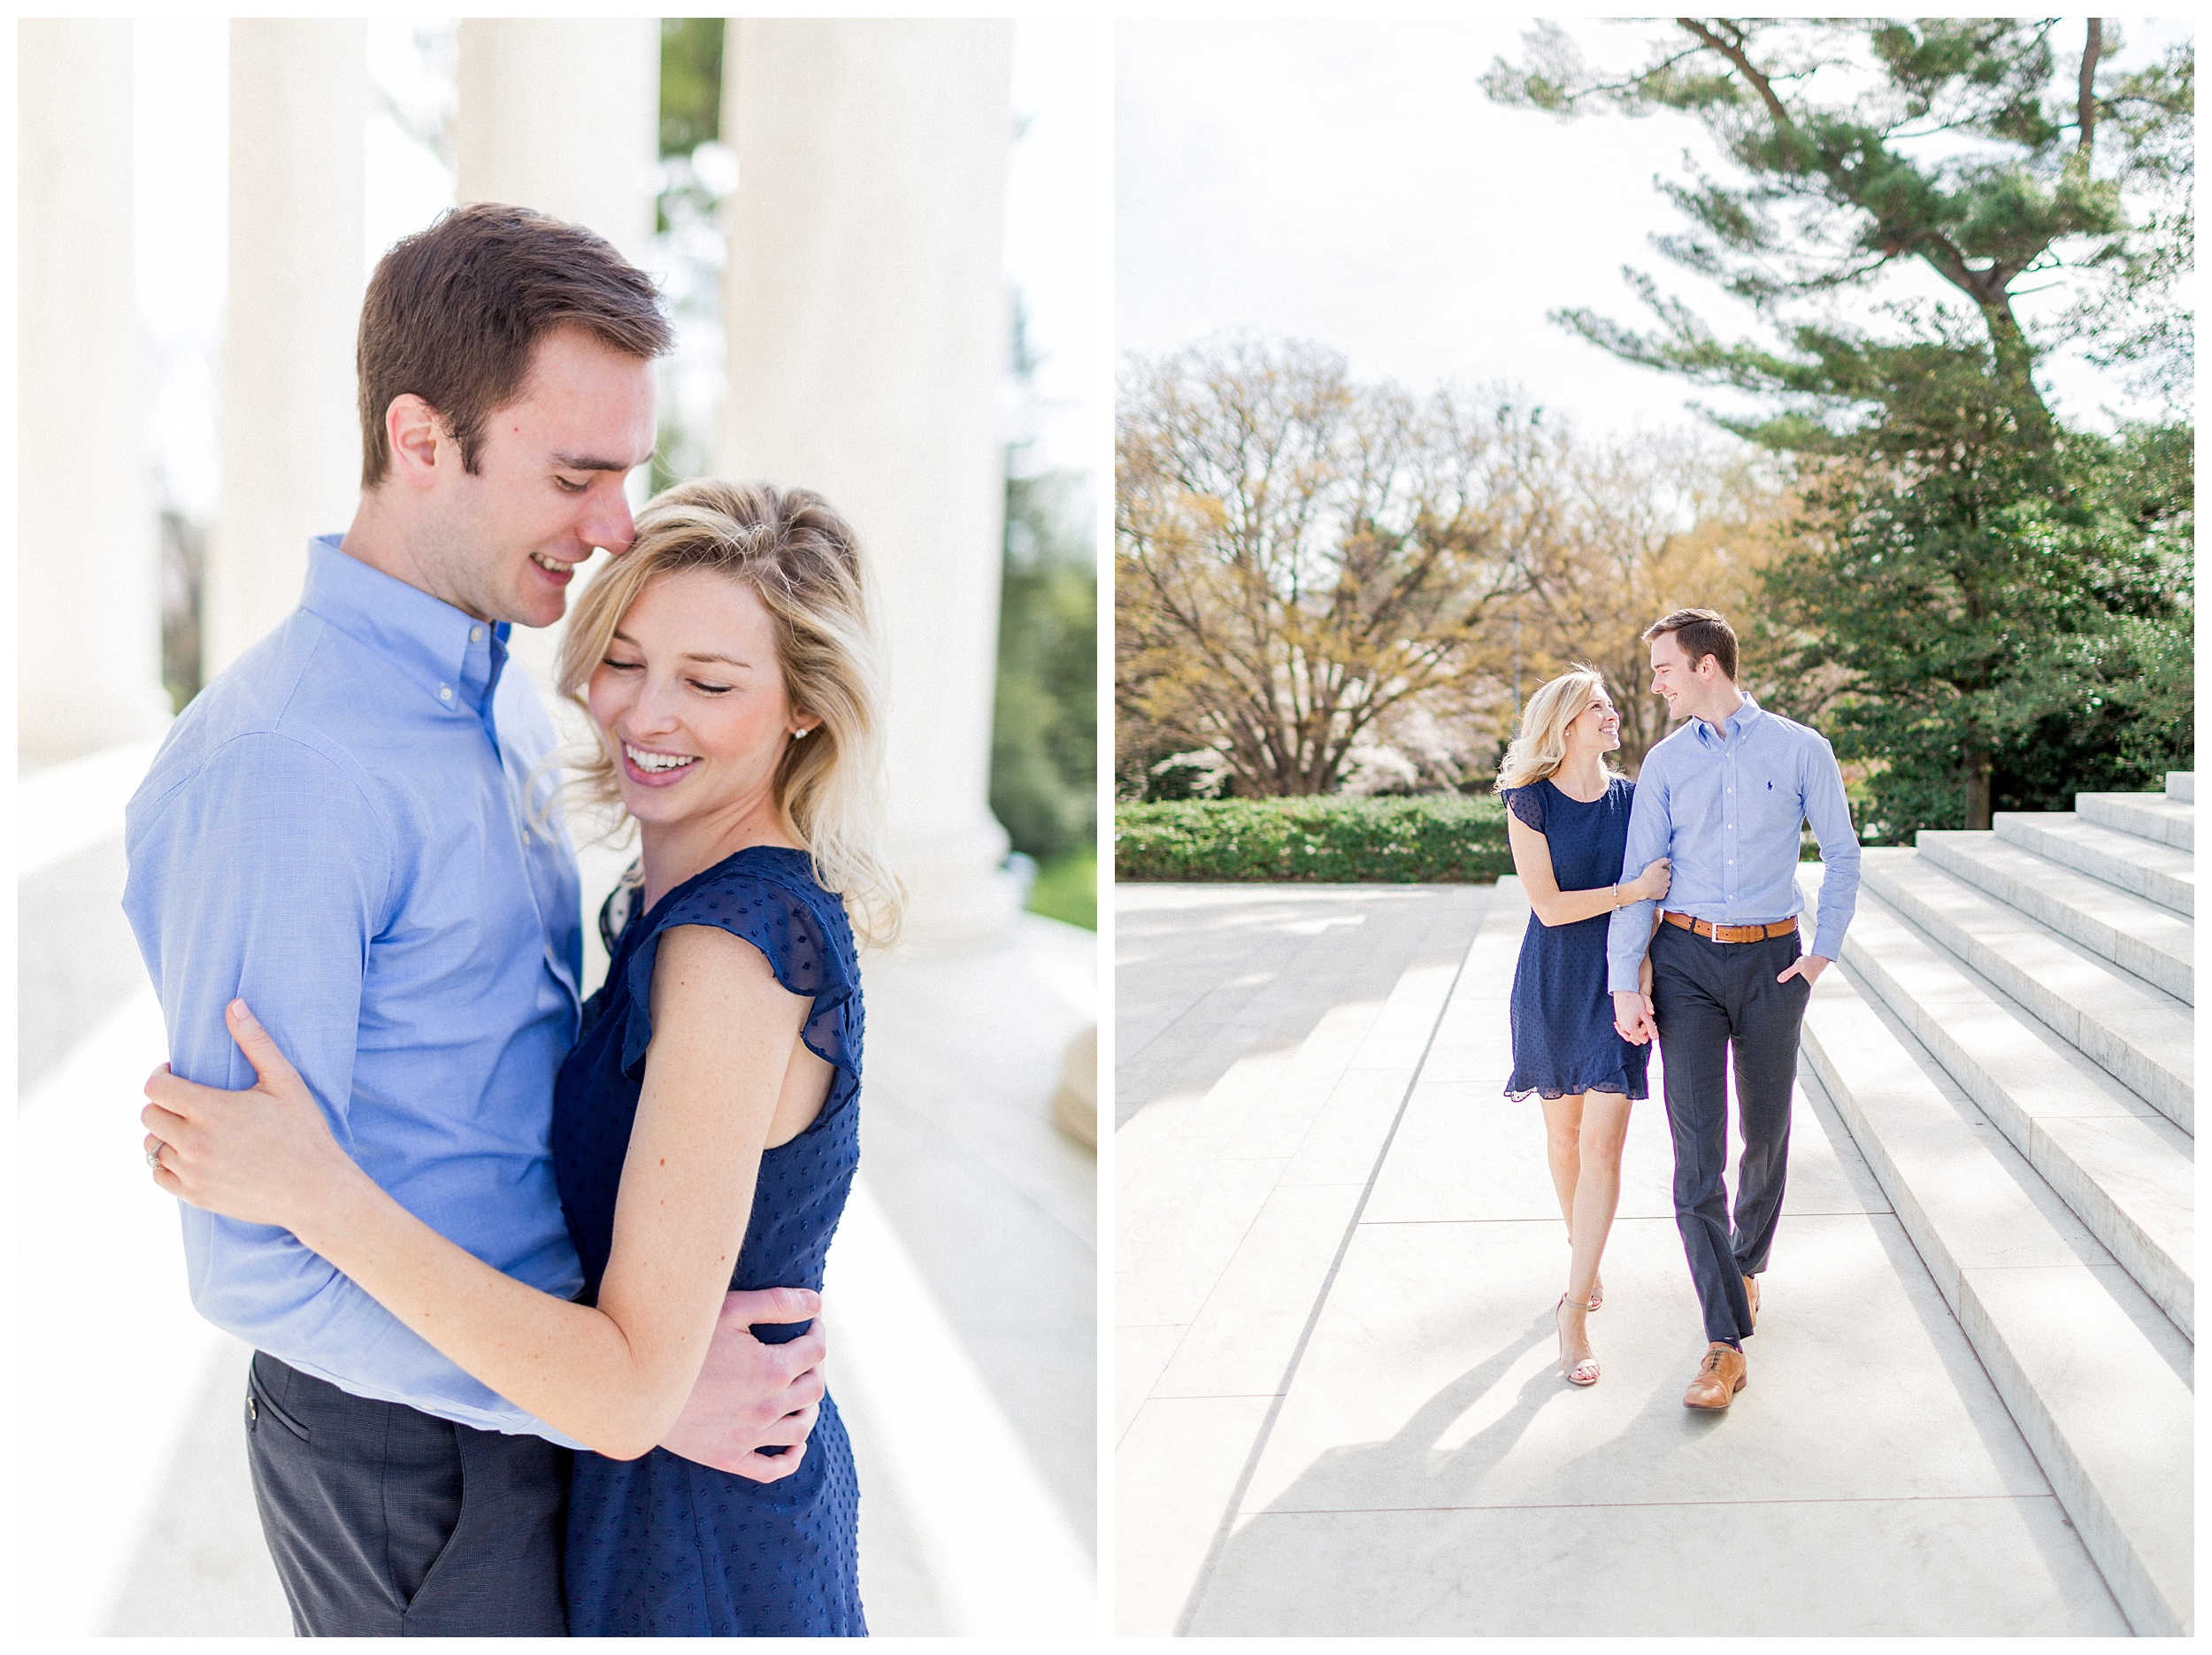 District of Columbia Cherry Blossom Engagement Session_0006.jpg